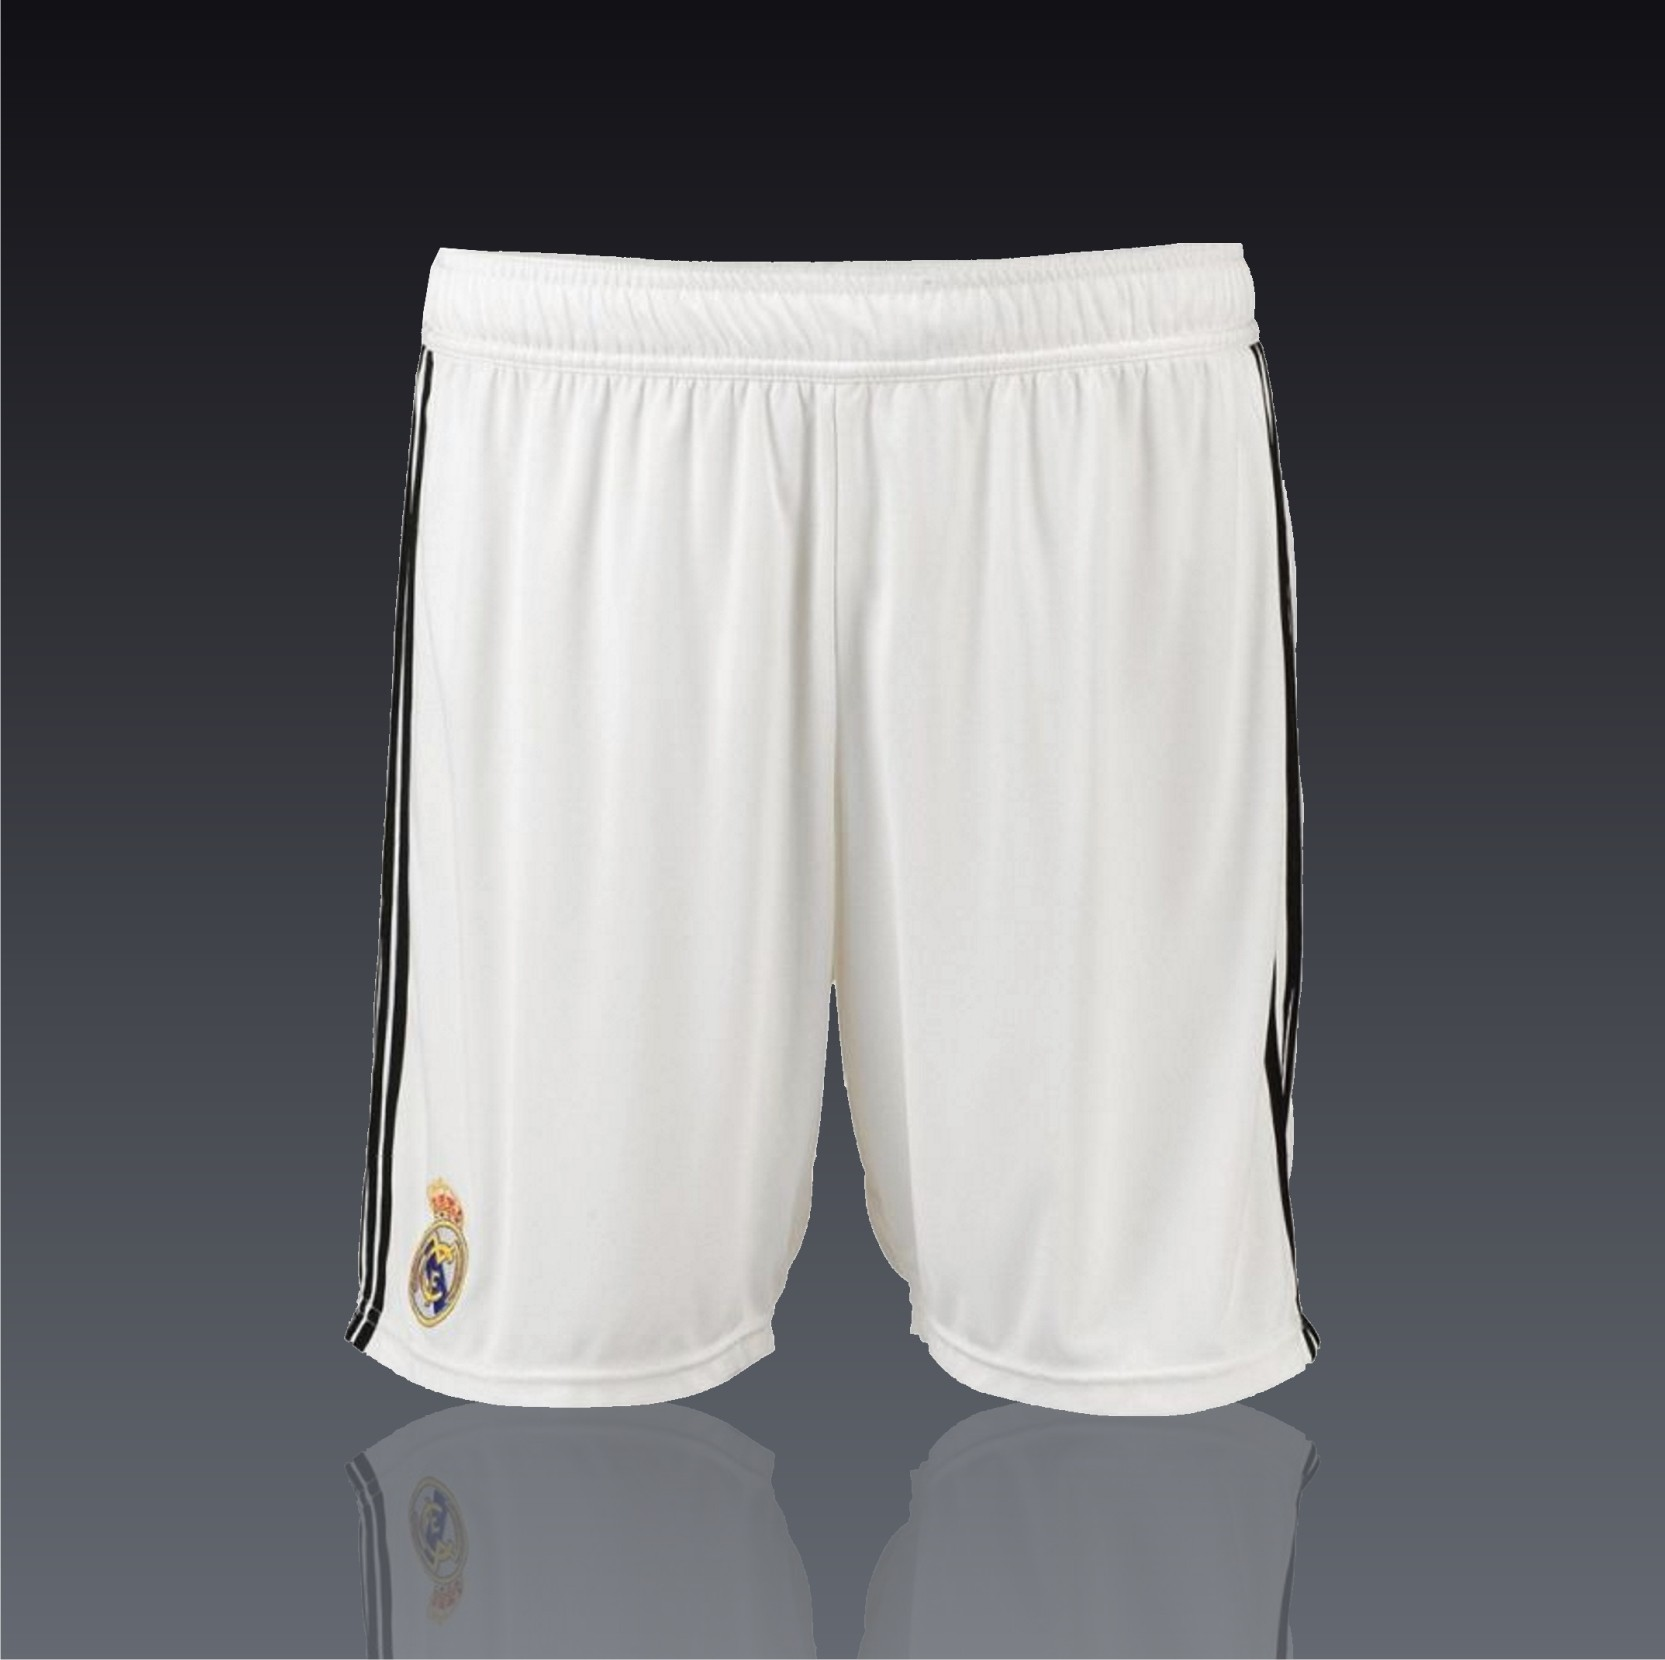 Real Madrid Short 201819 (hazai)